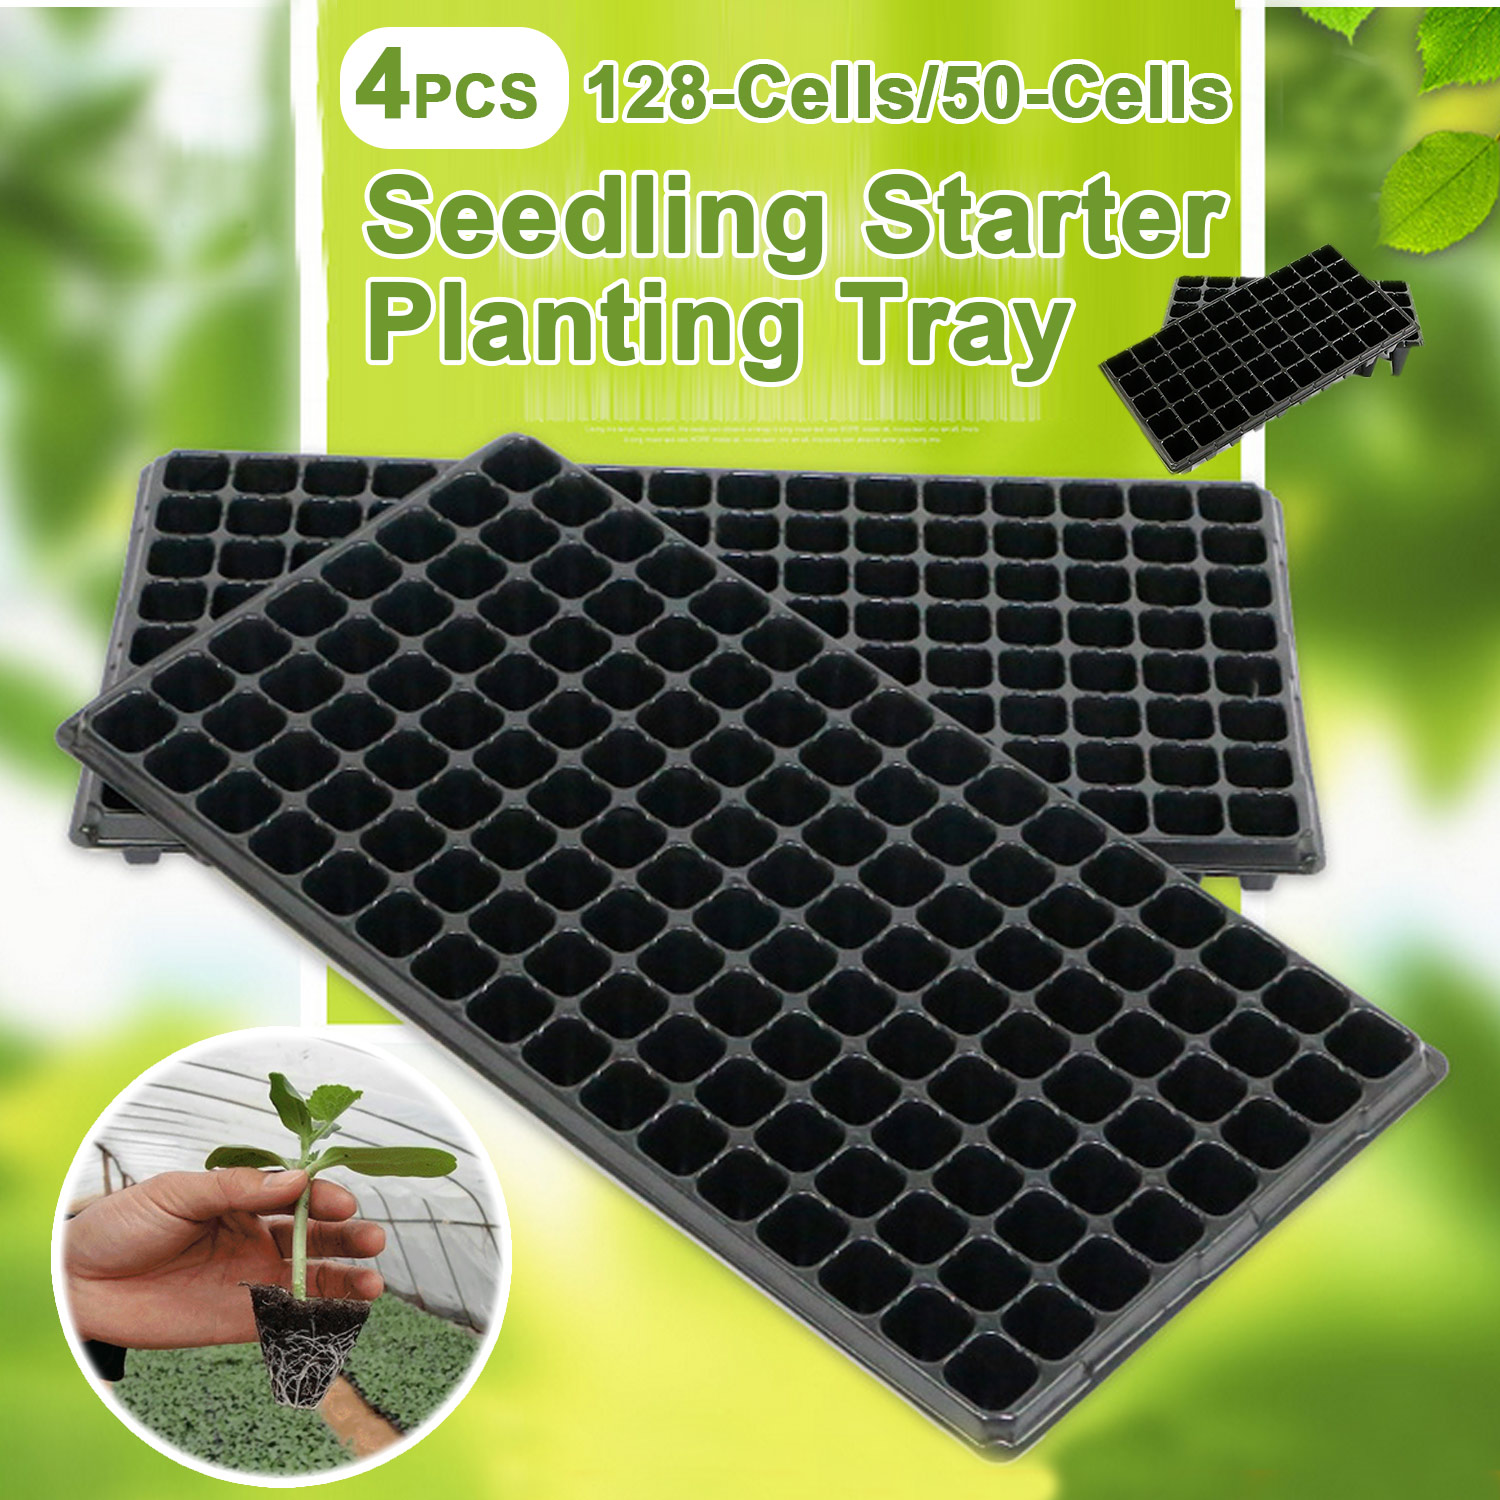 Behogar 100pcs Peat Pellets Plant Seedling Soil Blocks Starting Plugs Garden Tools for Indoor Home Gardening Greenhouse 30mm